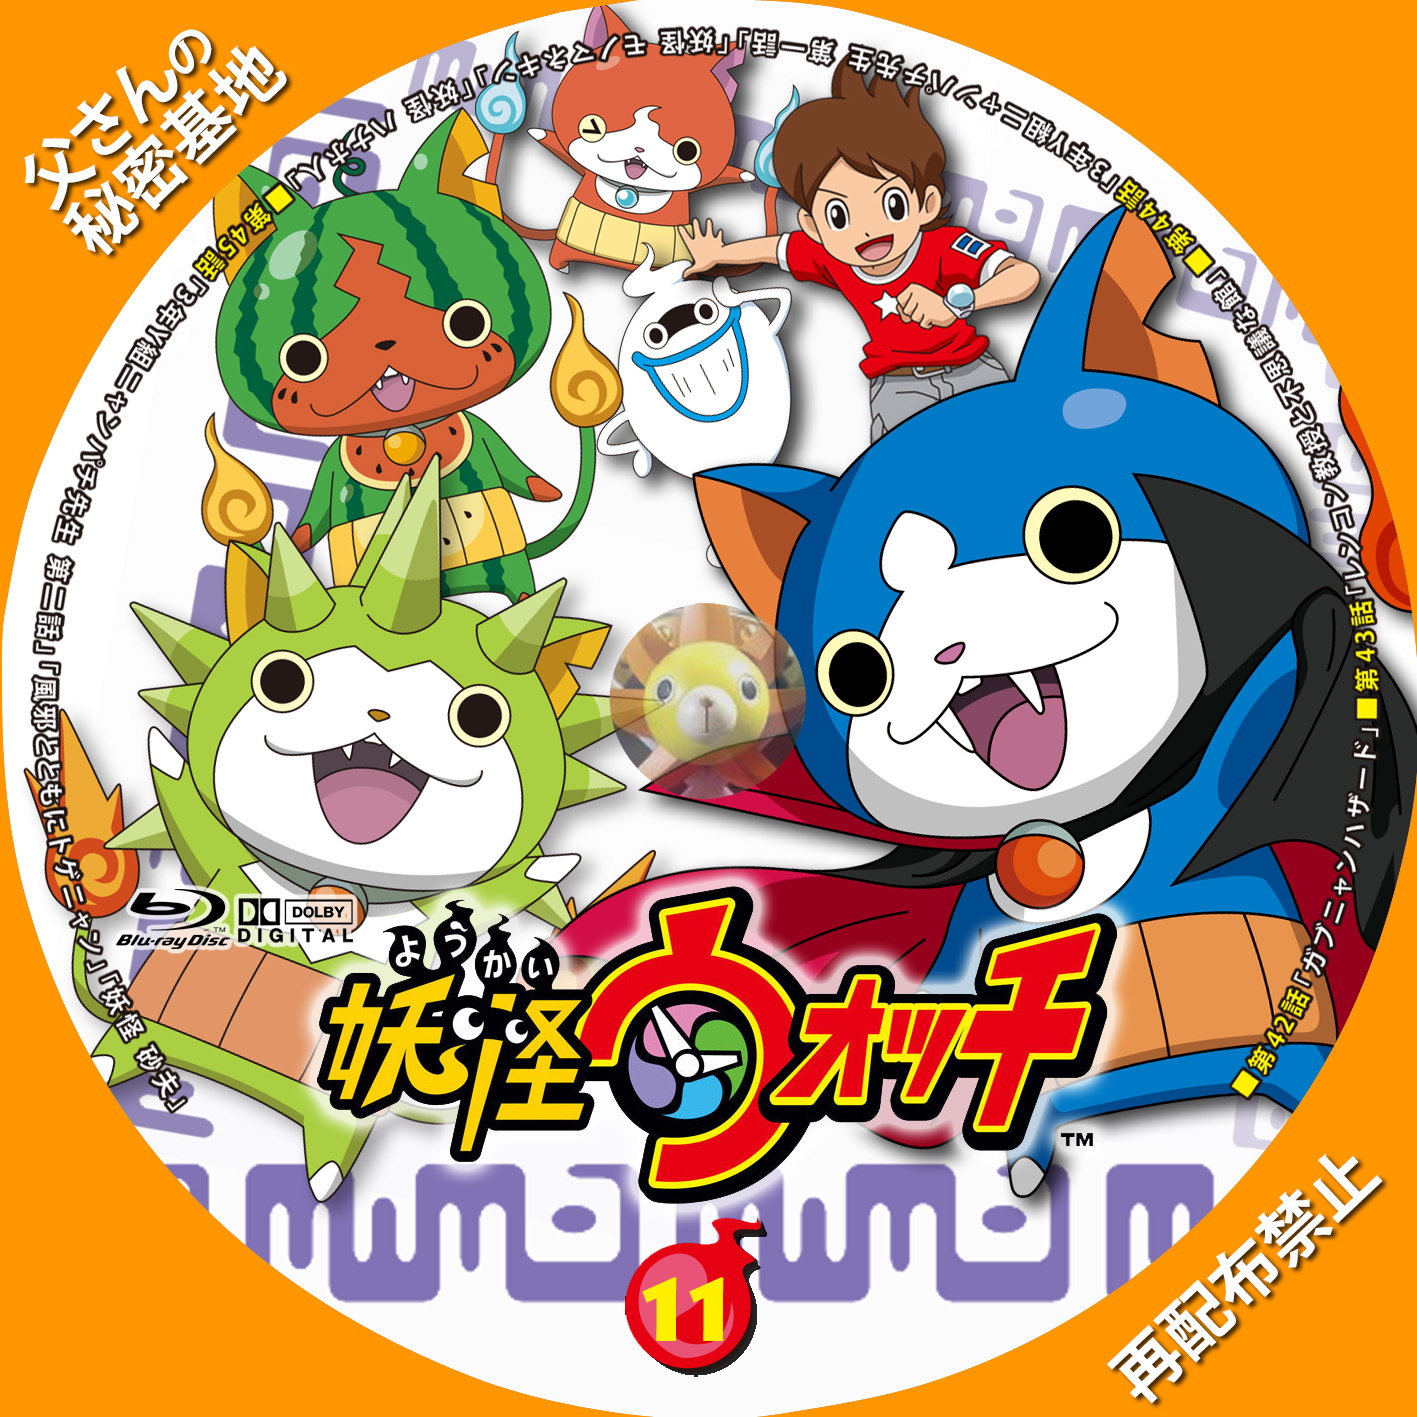 youkai-watch_11BDa.jpg